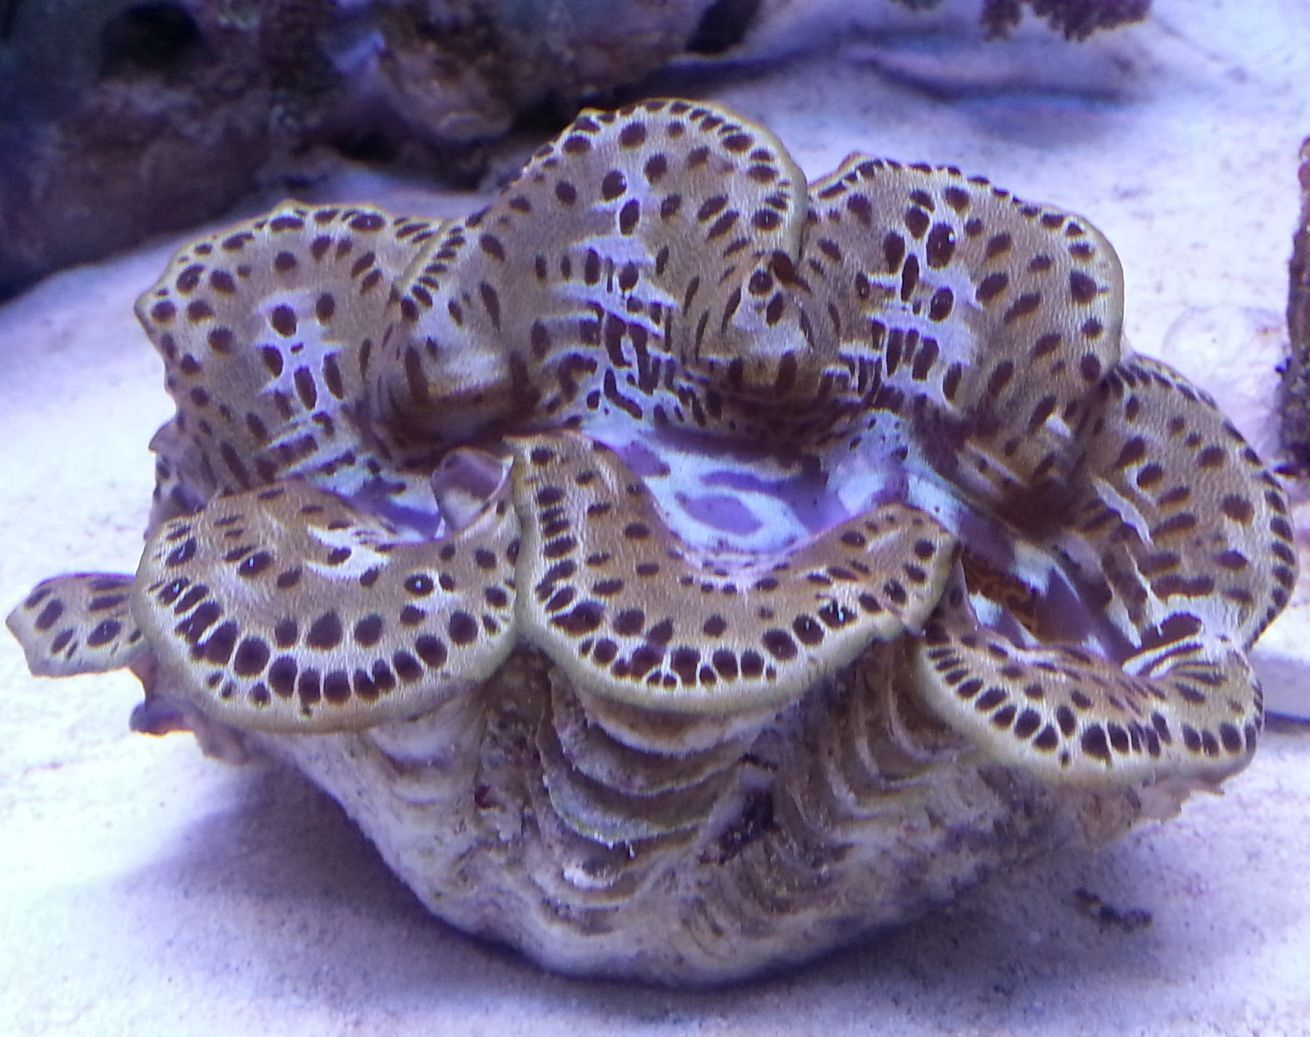 Giant Clams Page 2